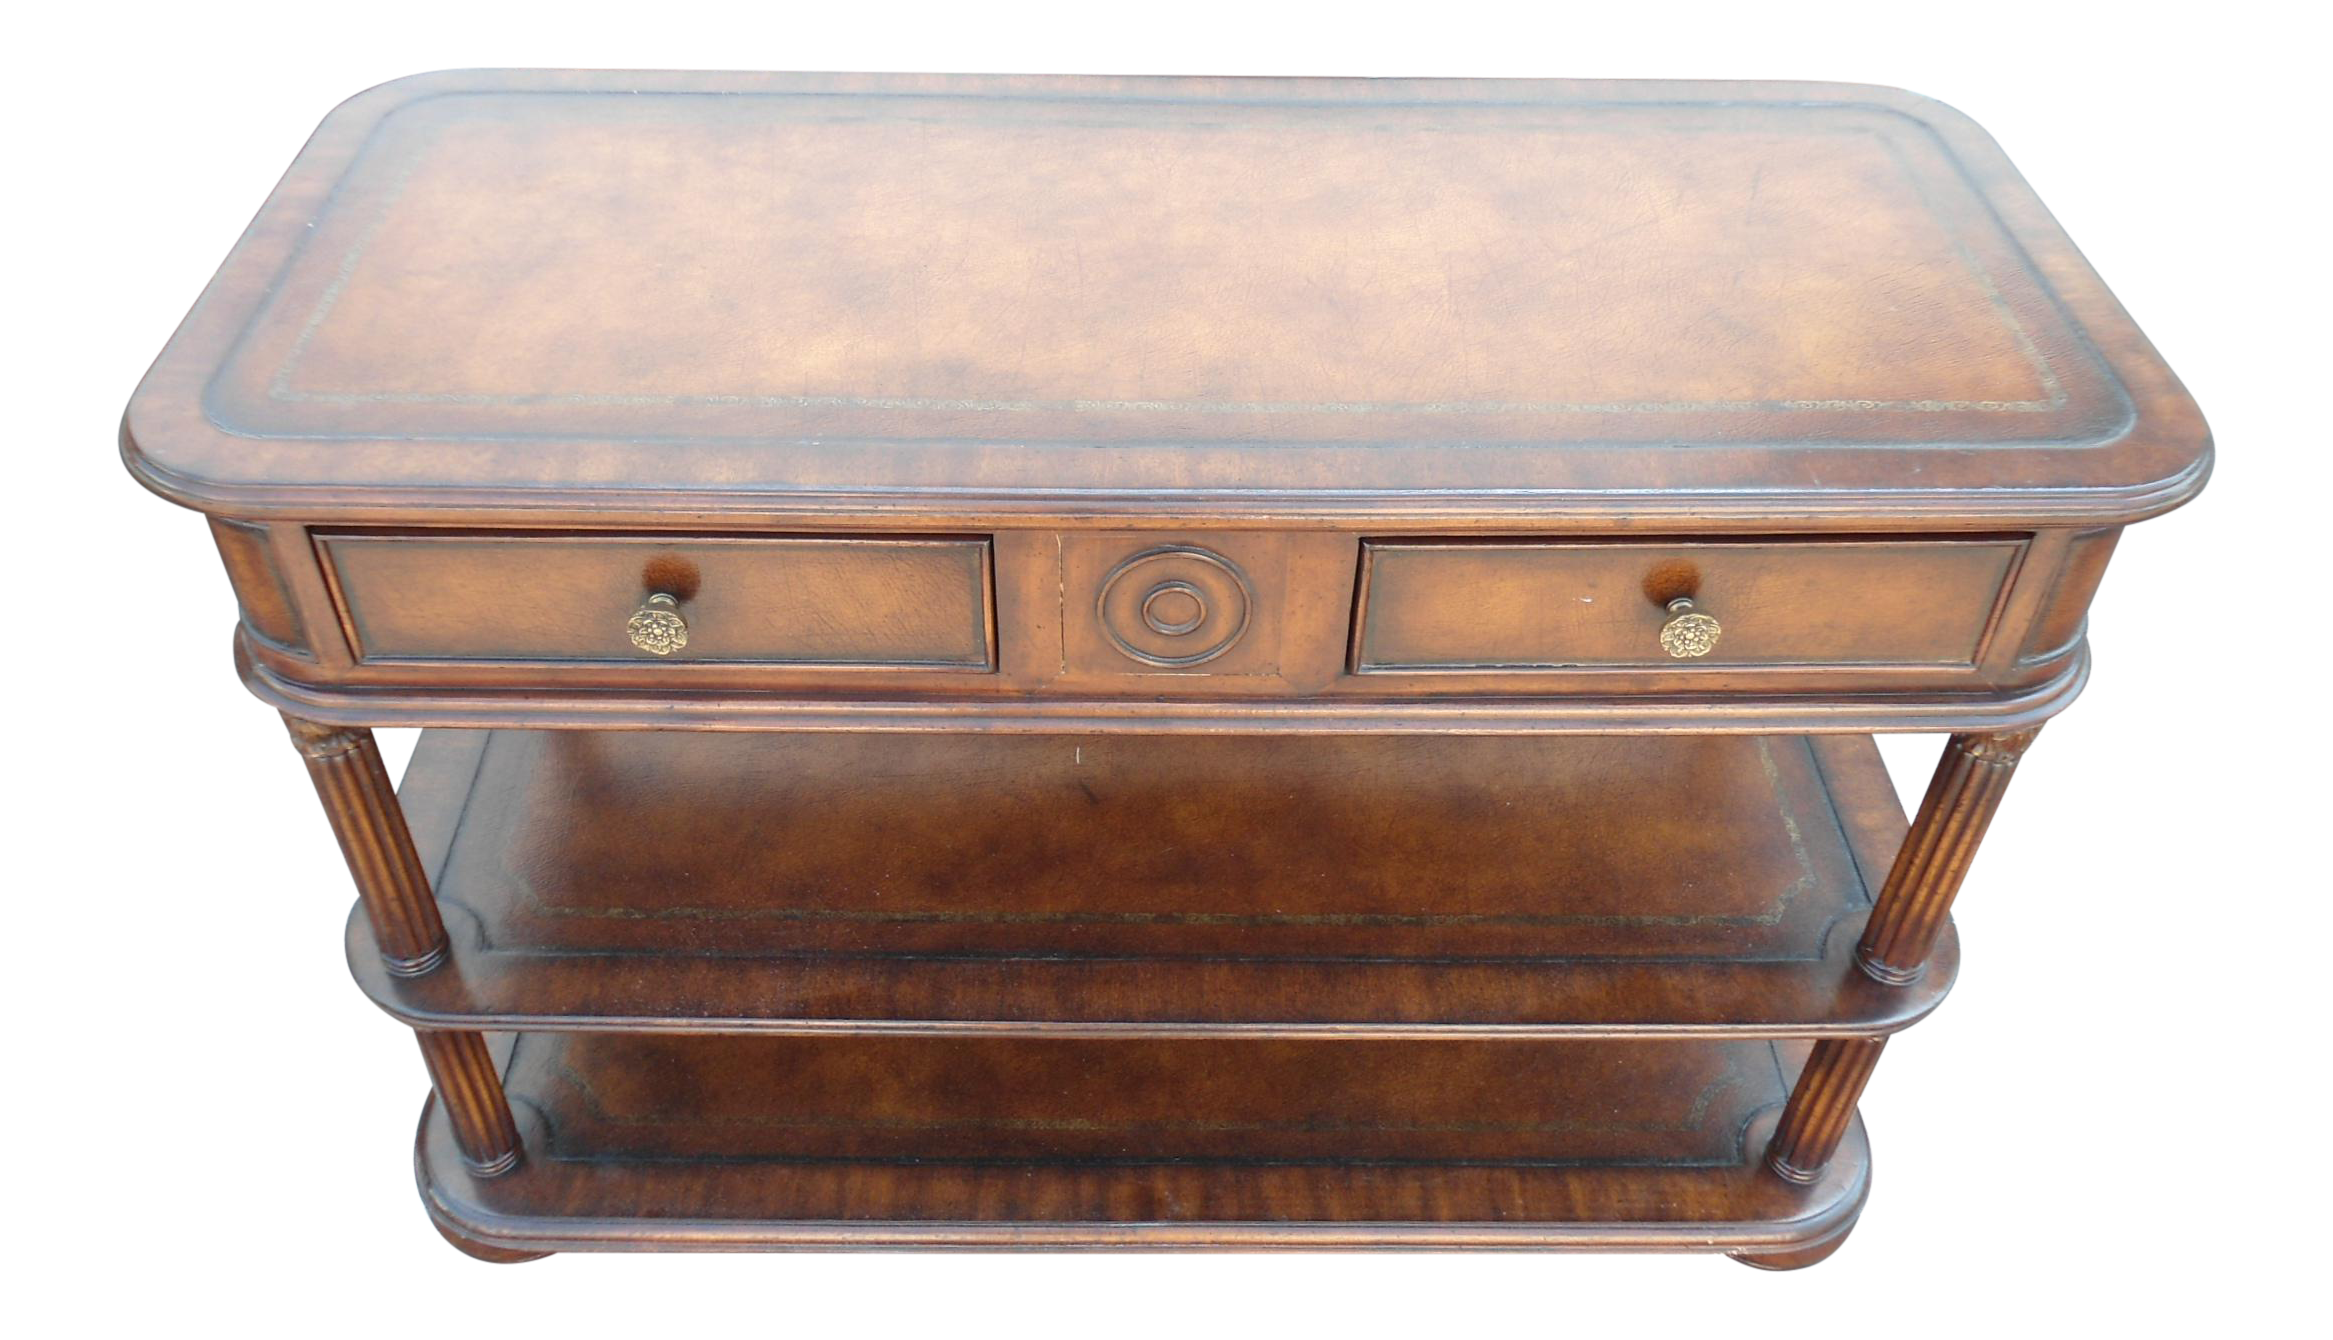 European crossroads leather top 3 tier console by john richards european crossroads leather top 3 tier console by john richards chairish arubaitofo Gallery